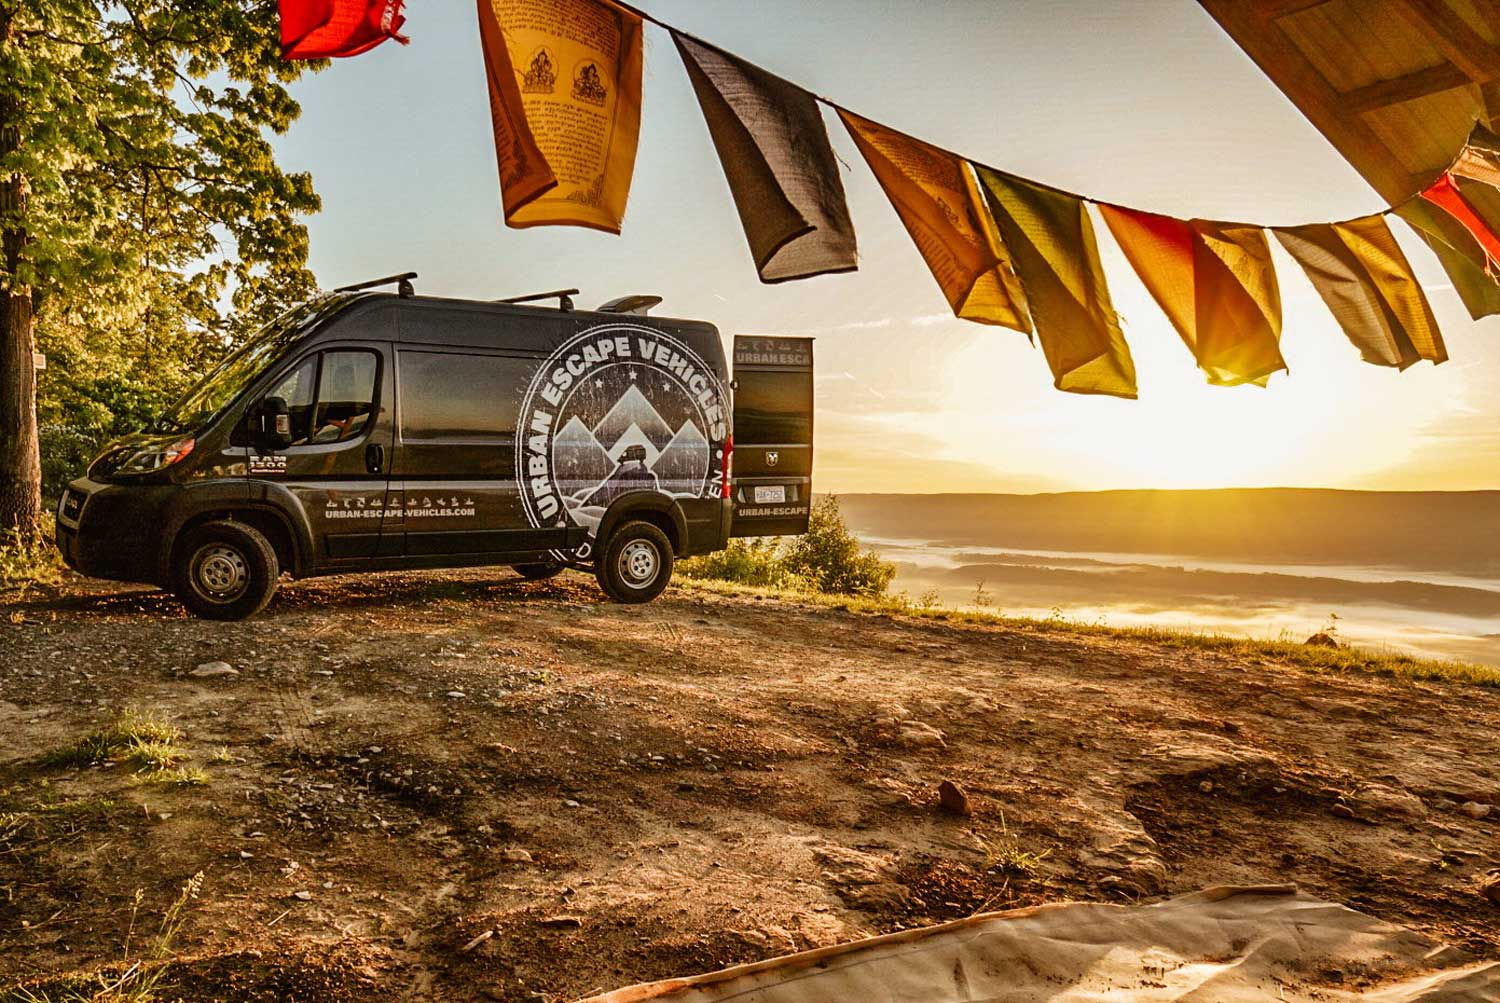 Urban Escape Vehicles Promaster with flags